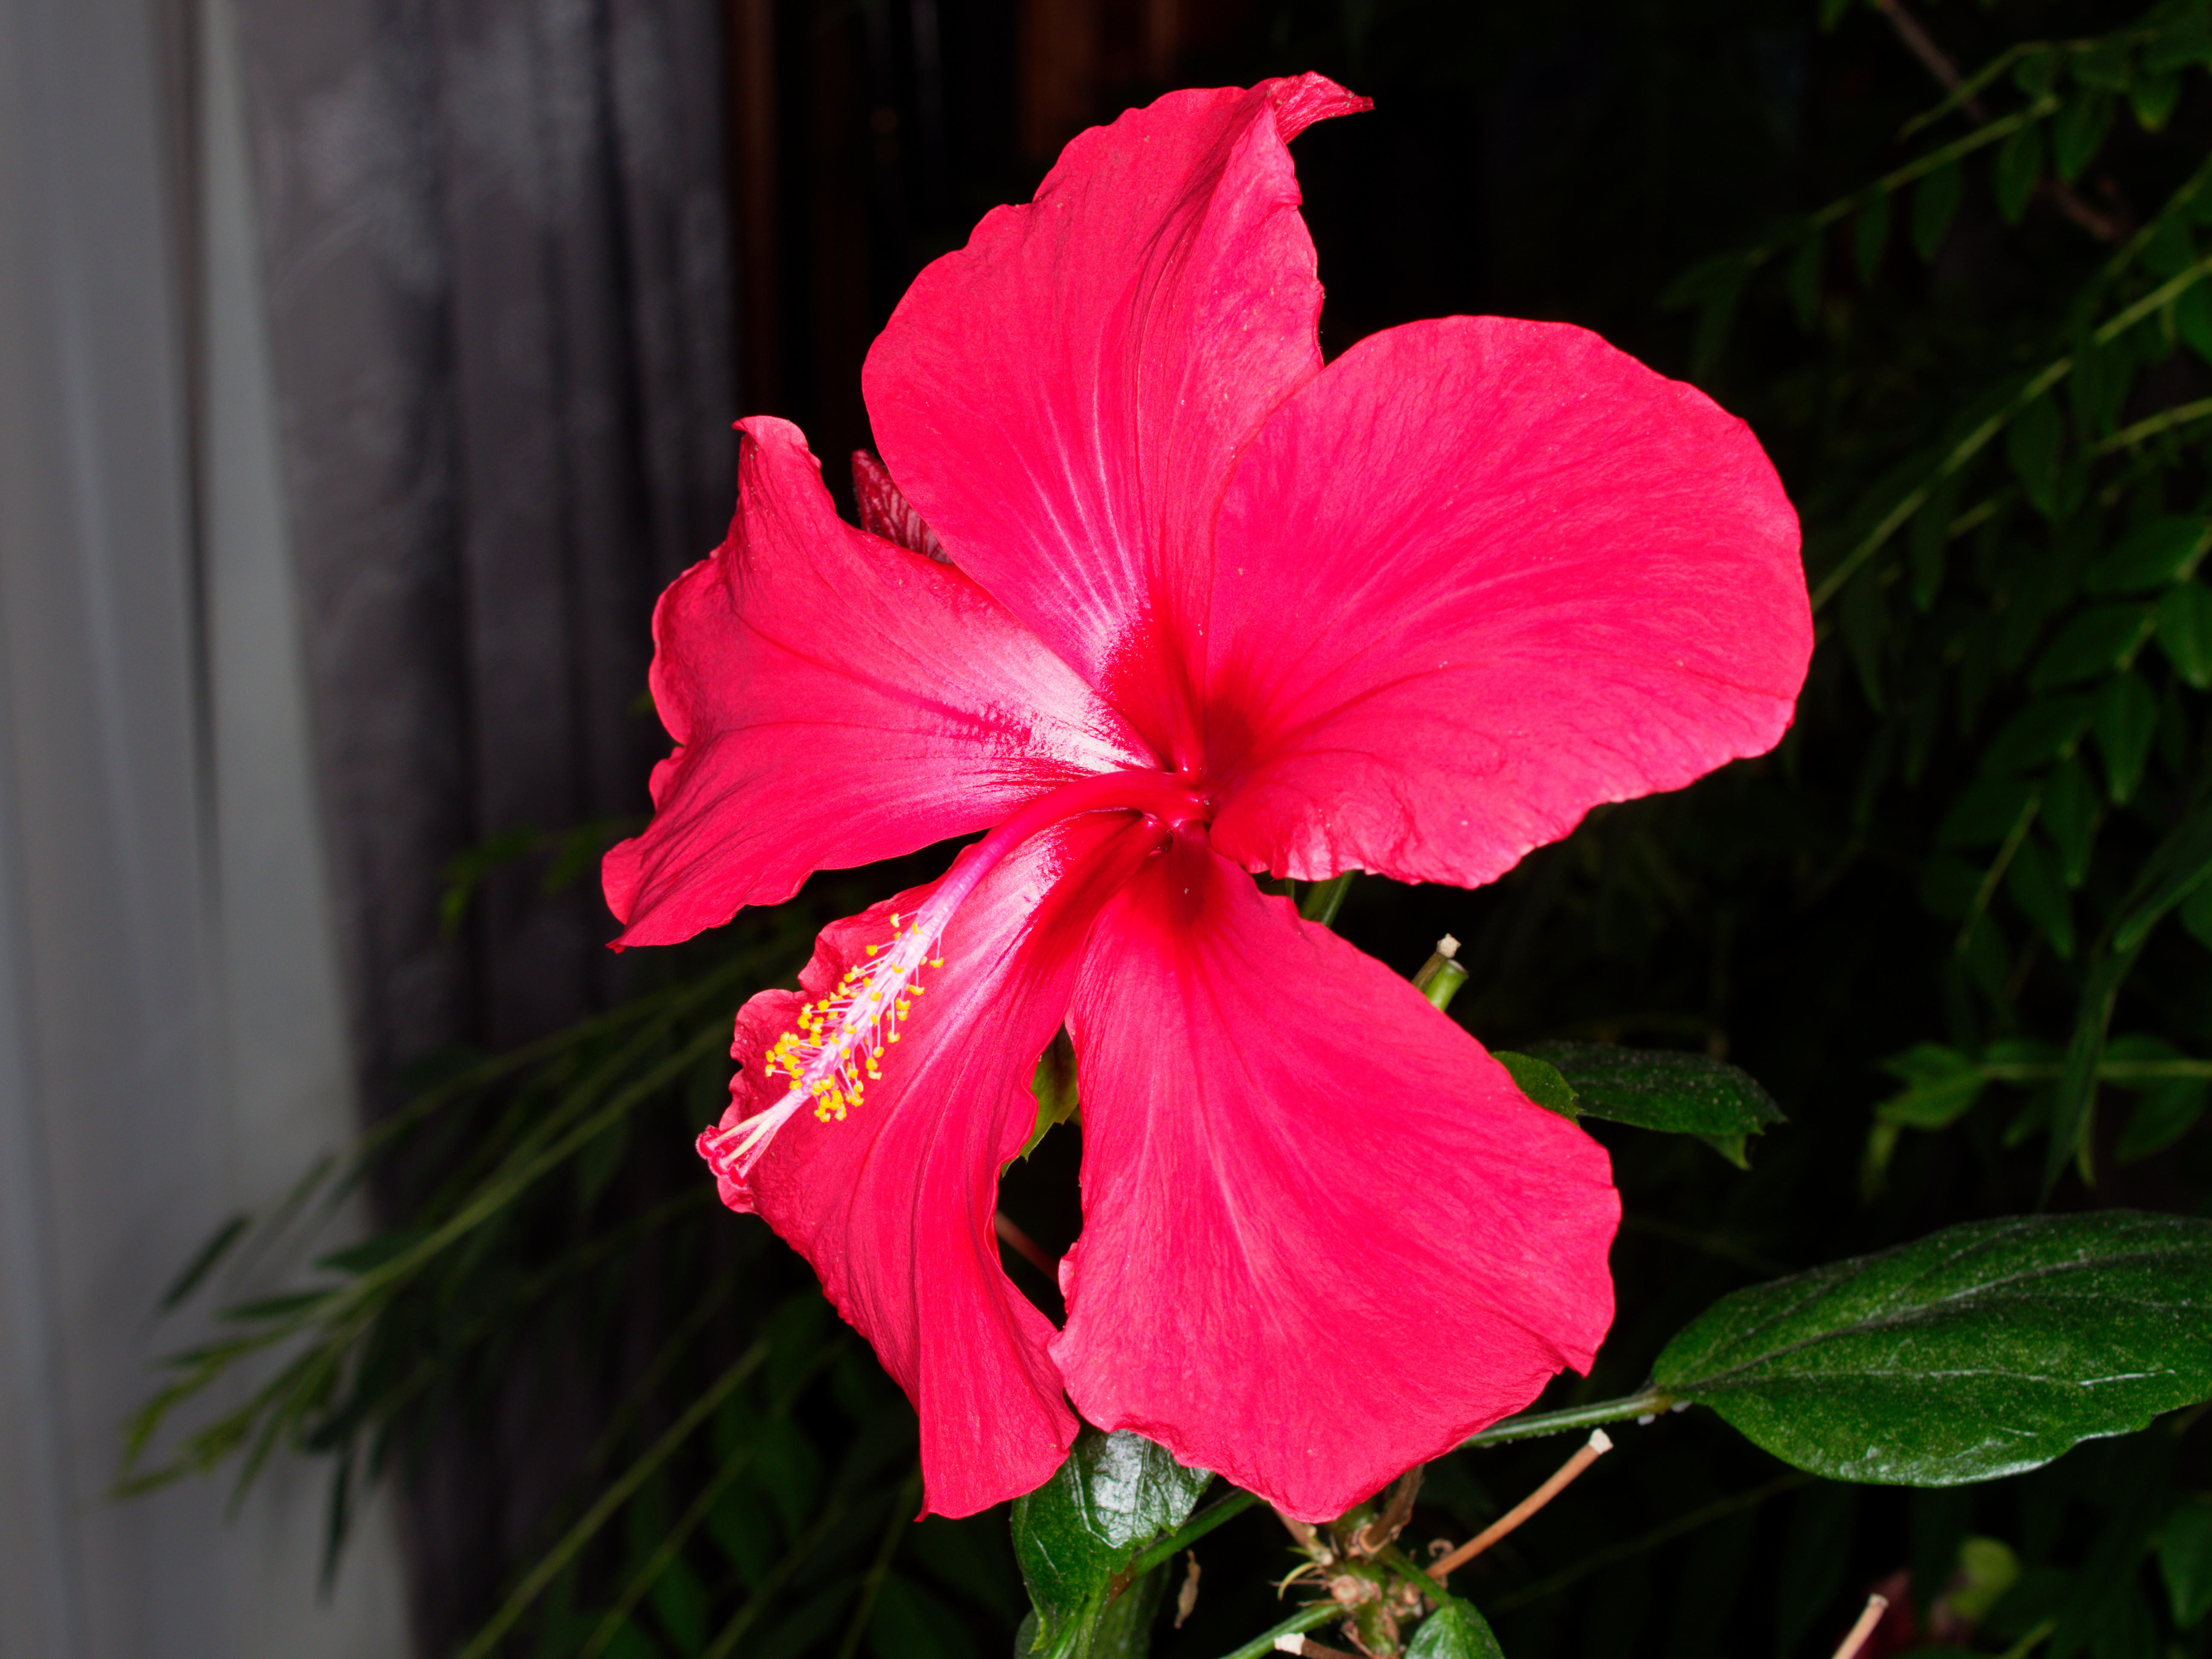 This should be Hibiscus-2.jpeg.  Is it missing?